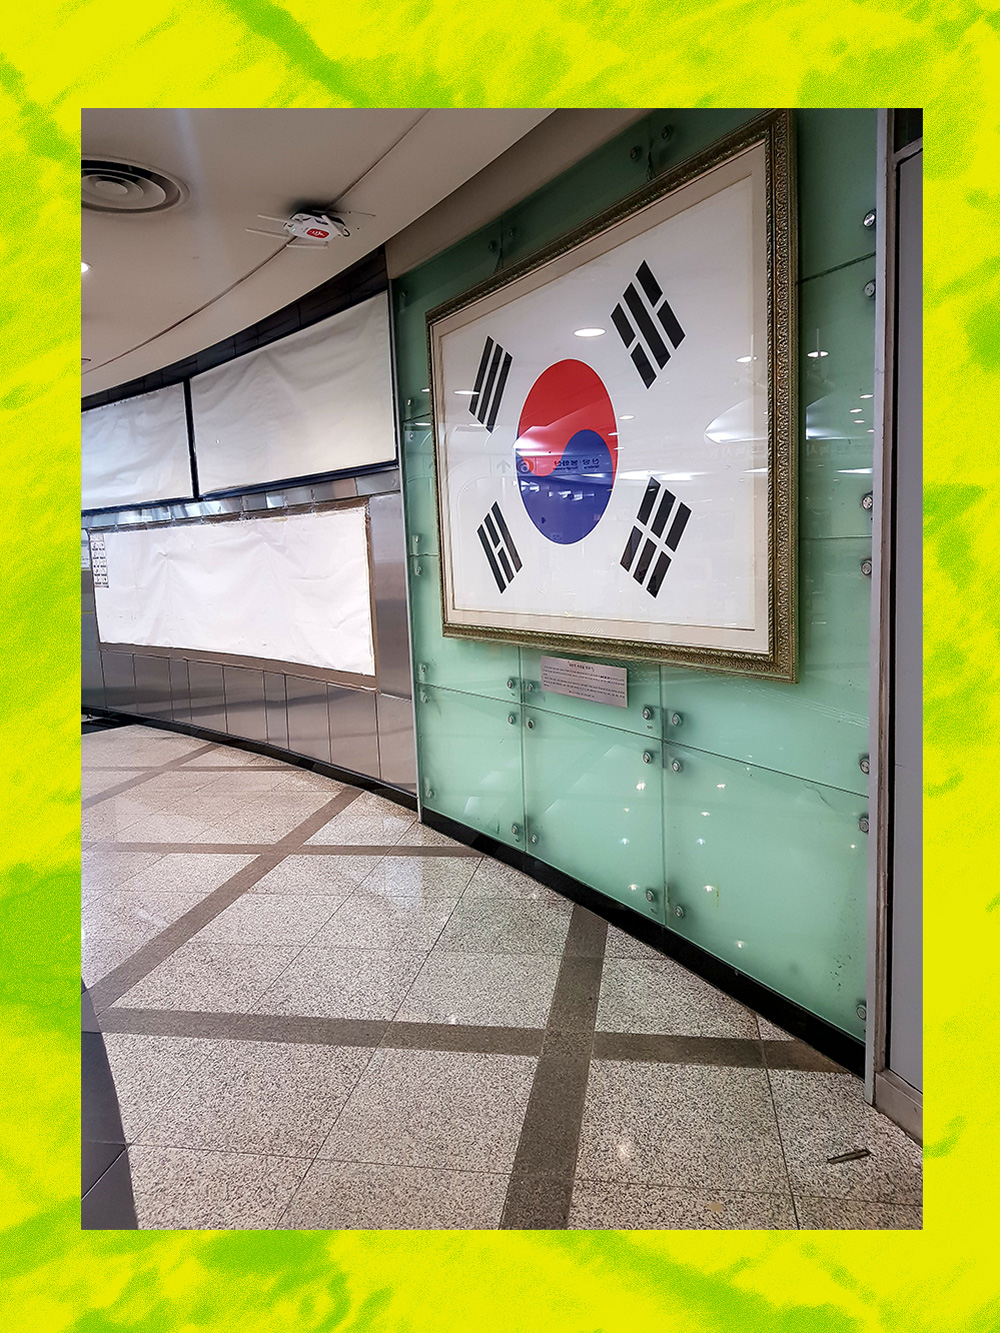 subway_art_noksapyeong2.jpg